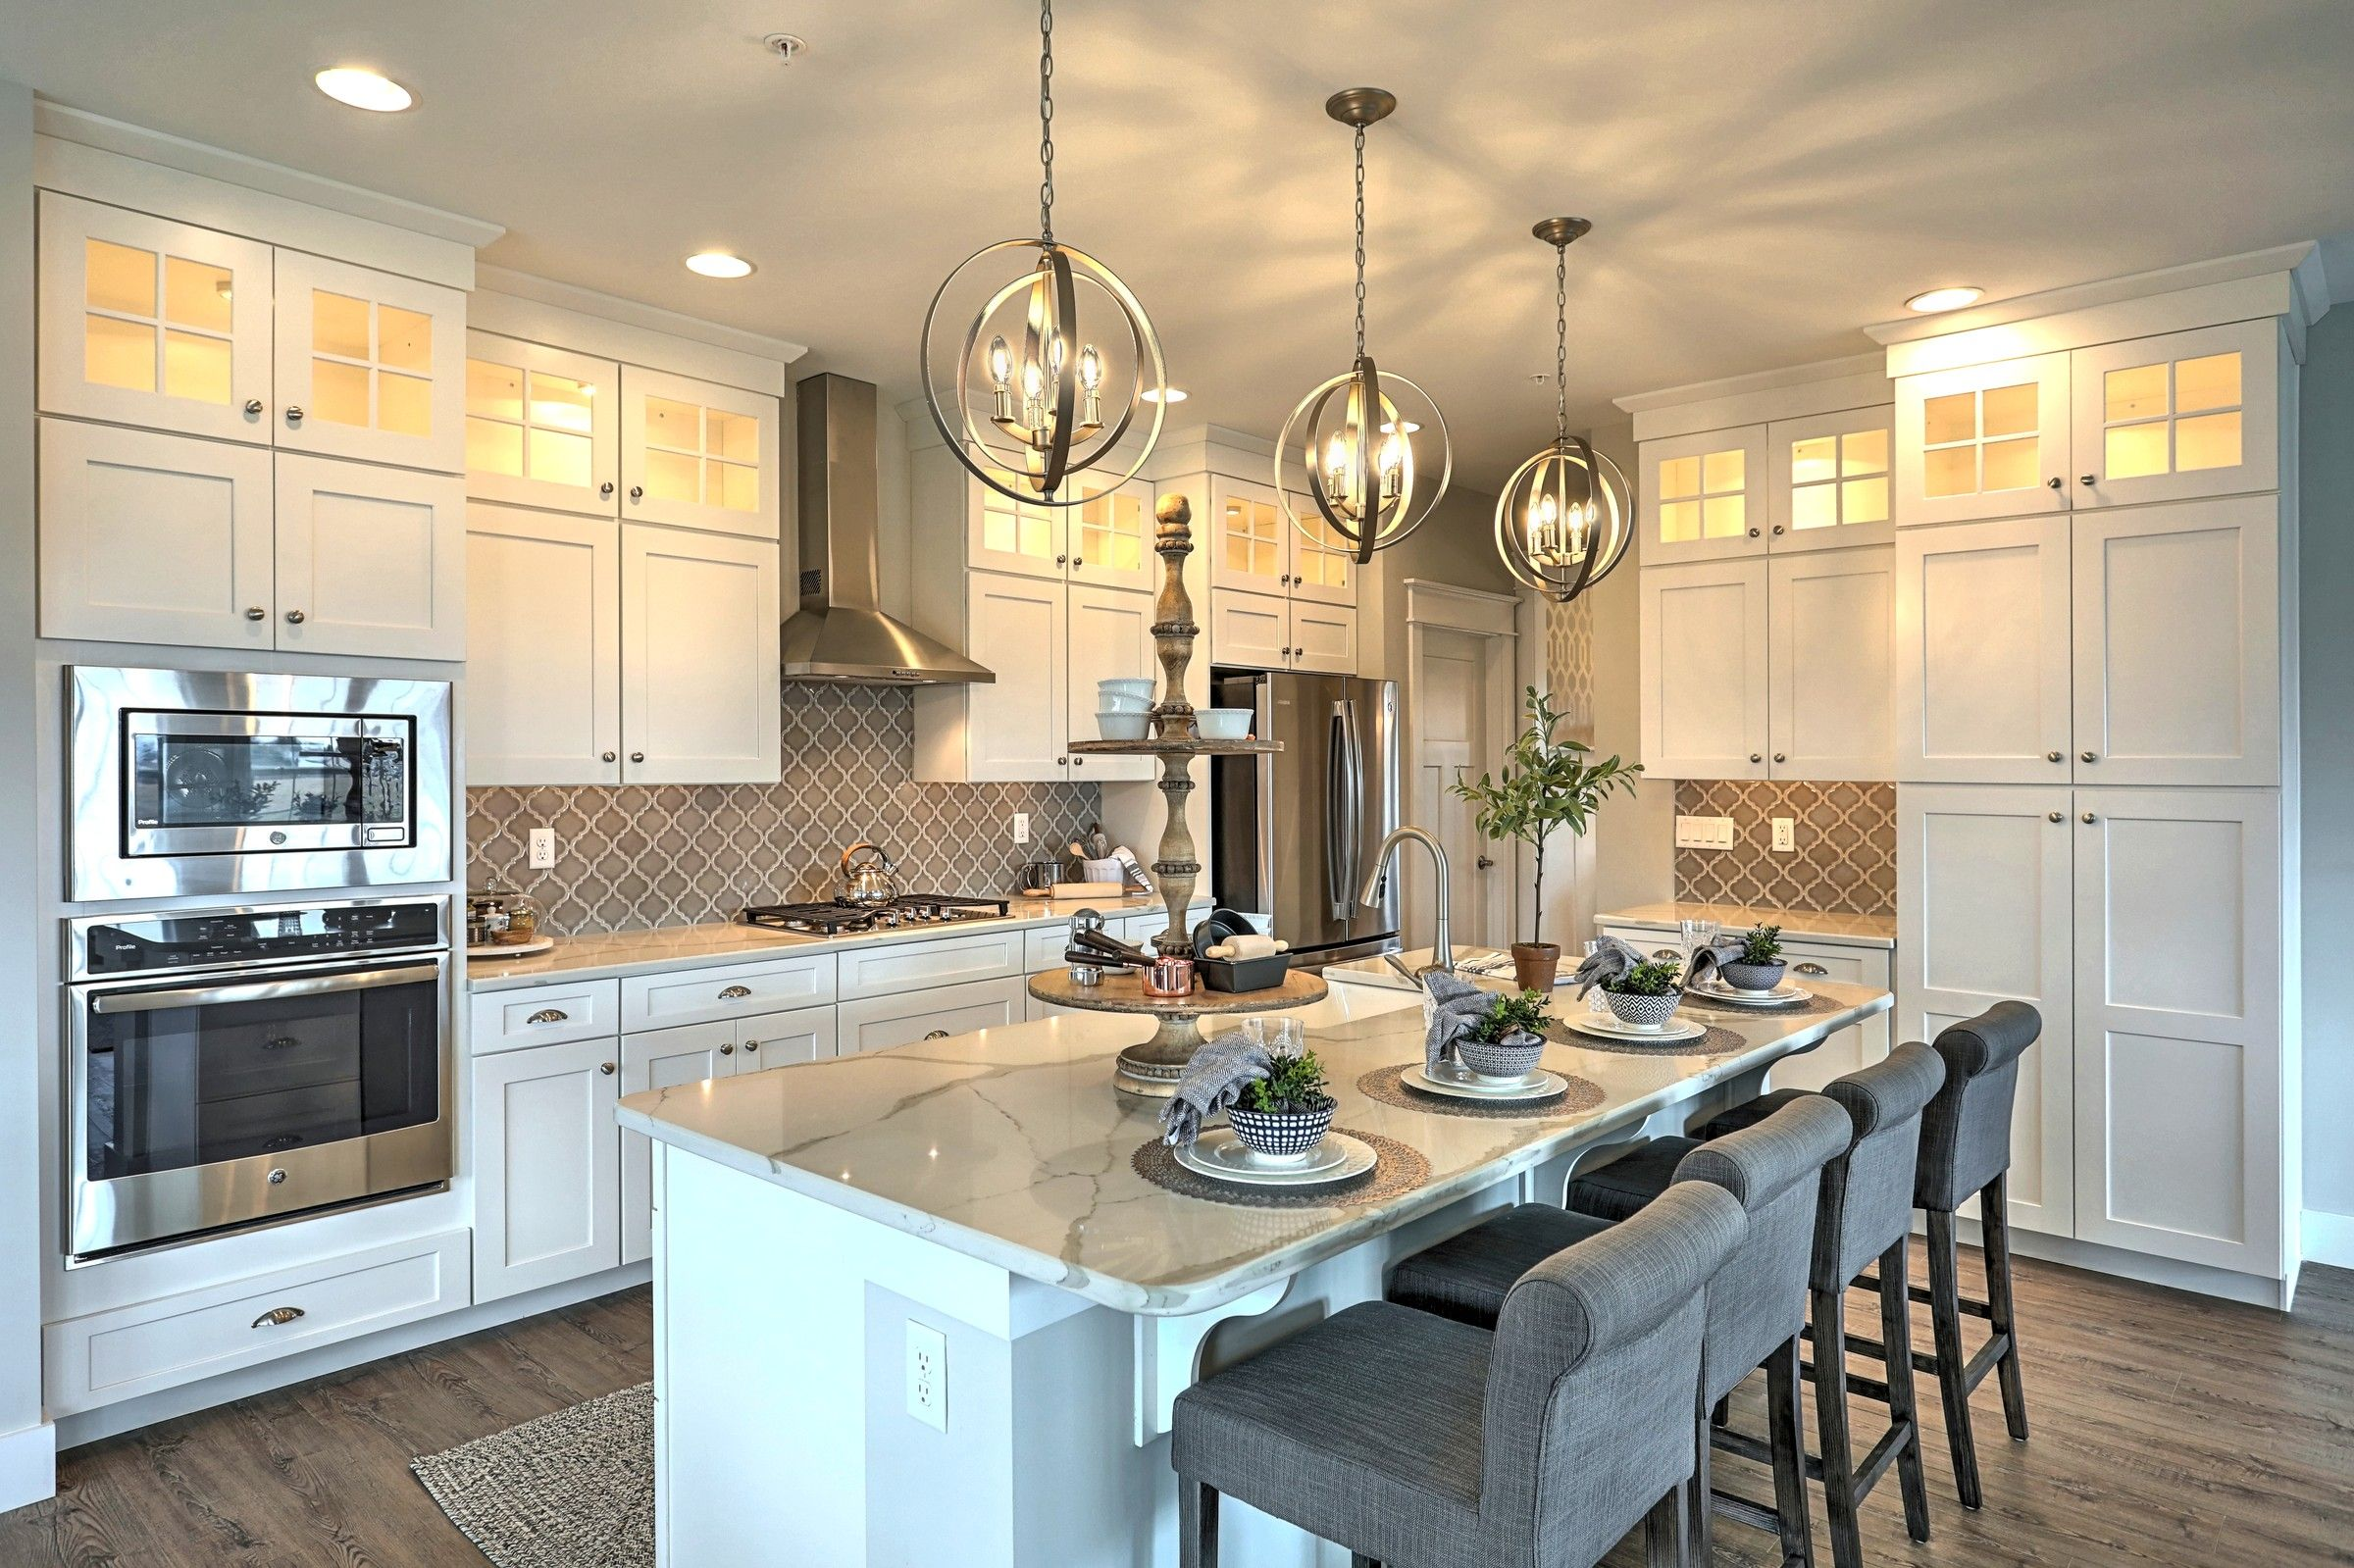 Kitchen featured in the Augusta Heritage By Keystone Custom Homes in York, PA